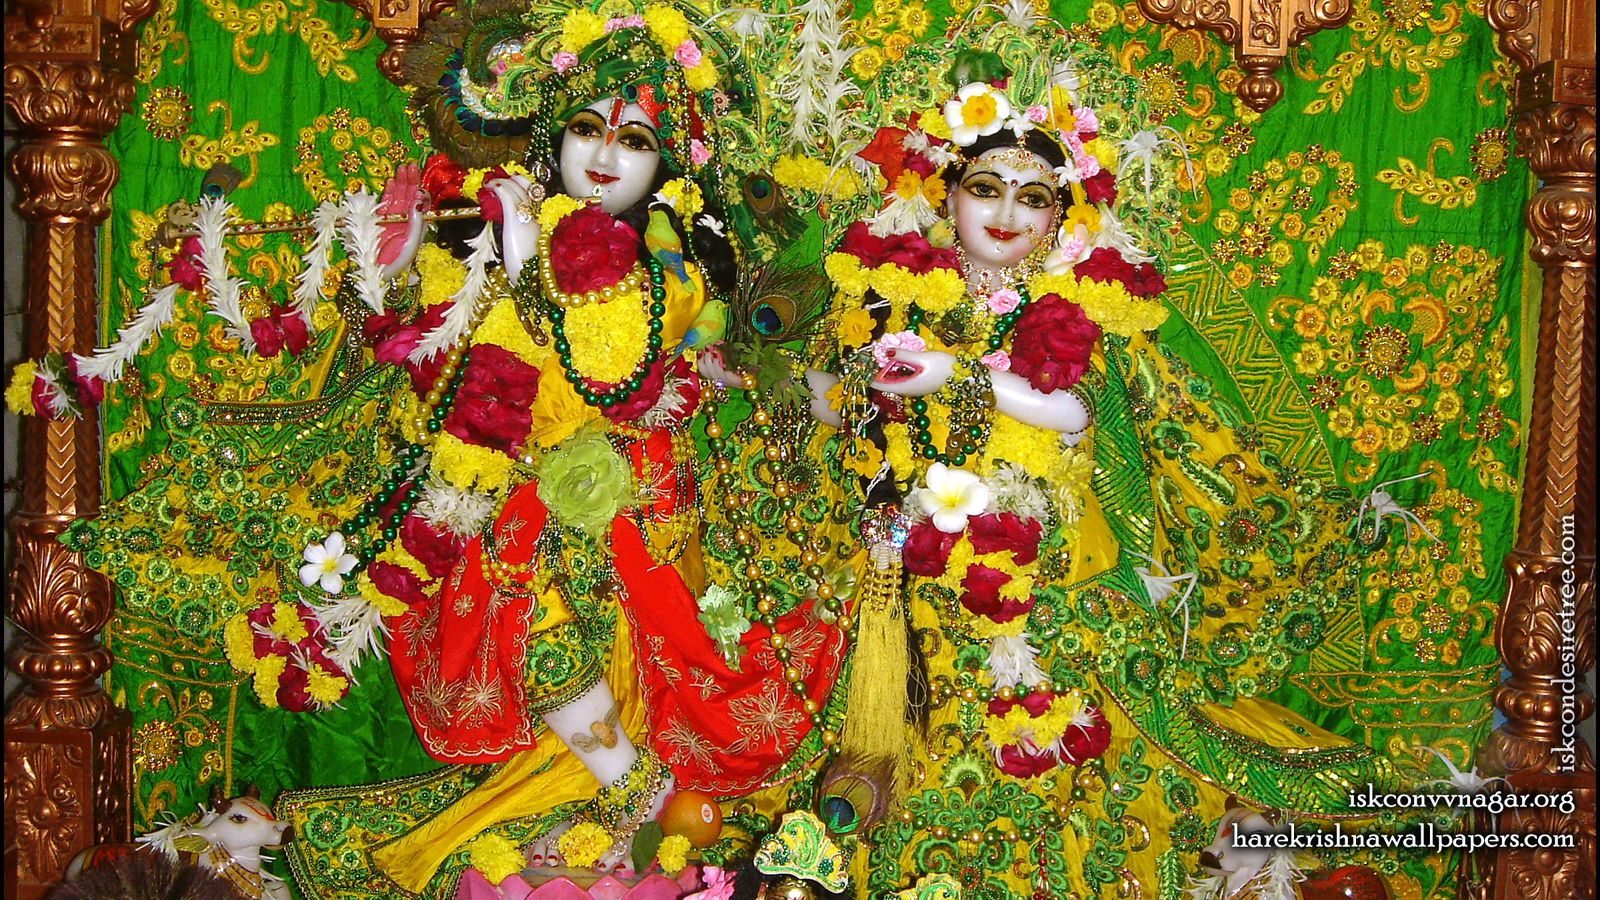 Sri Sri Radha Giridhari Wallpaper (011) Size 1600x900 Download